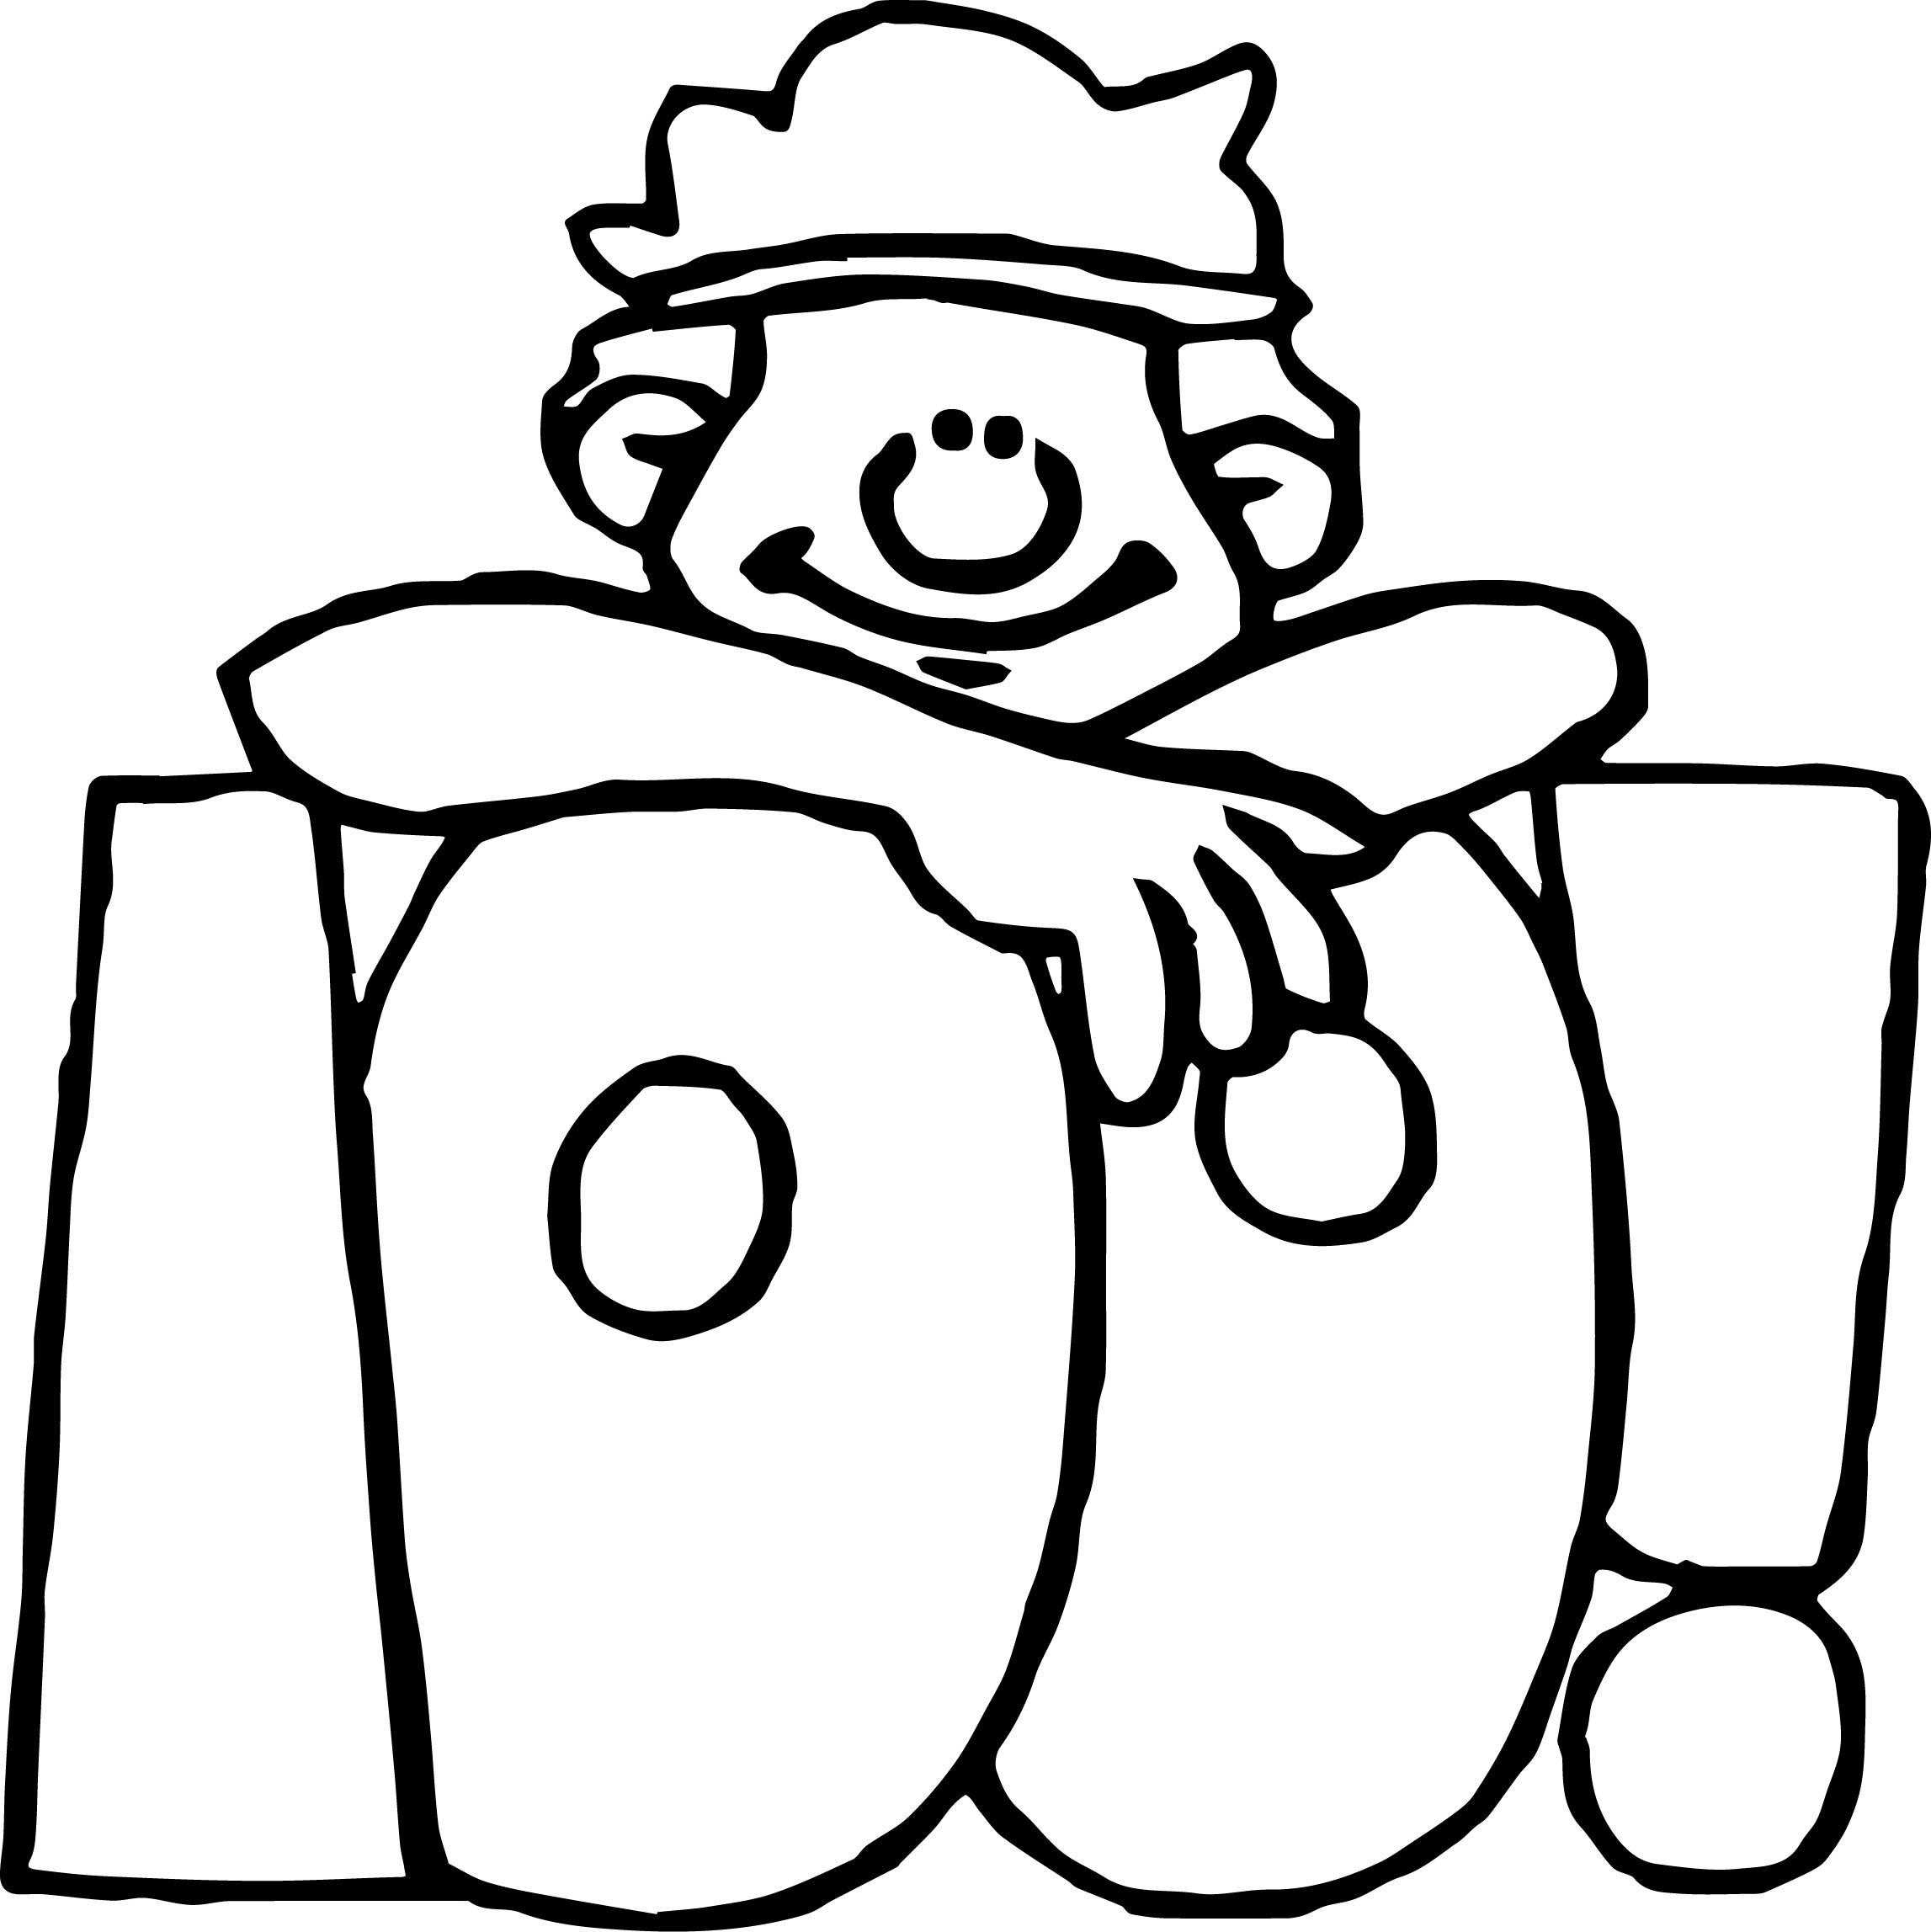 100th Day Number Coloring Page